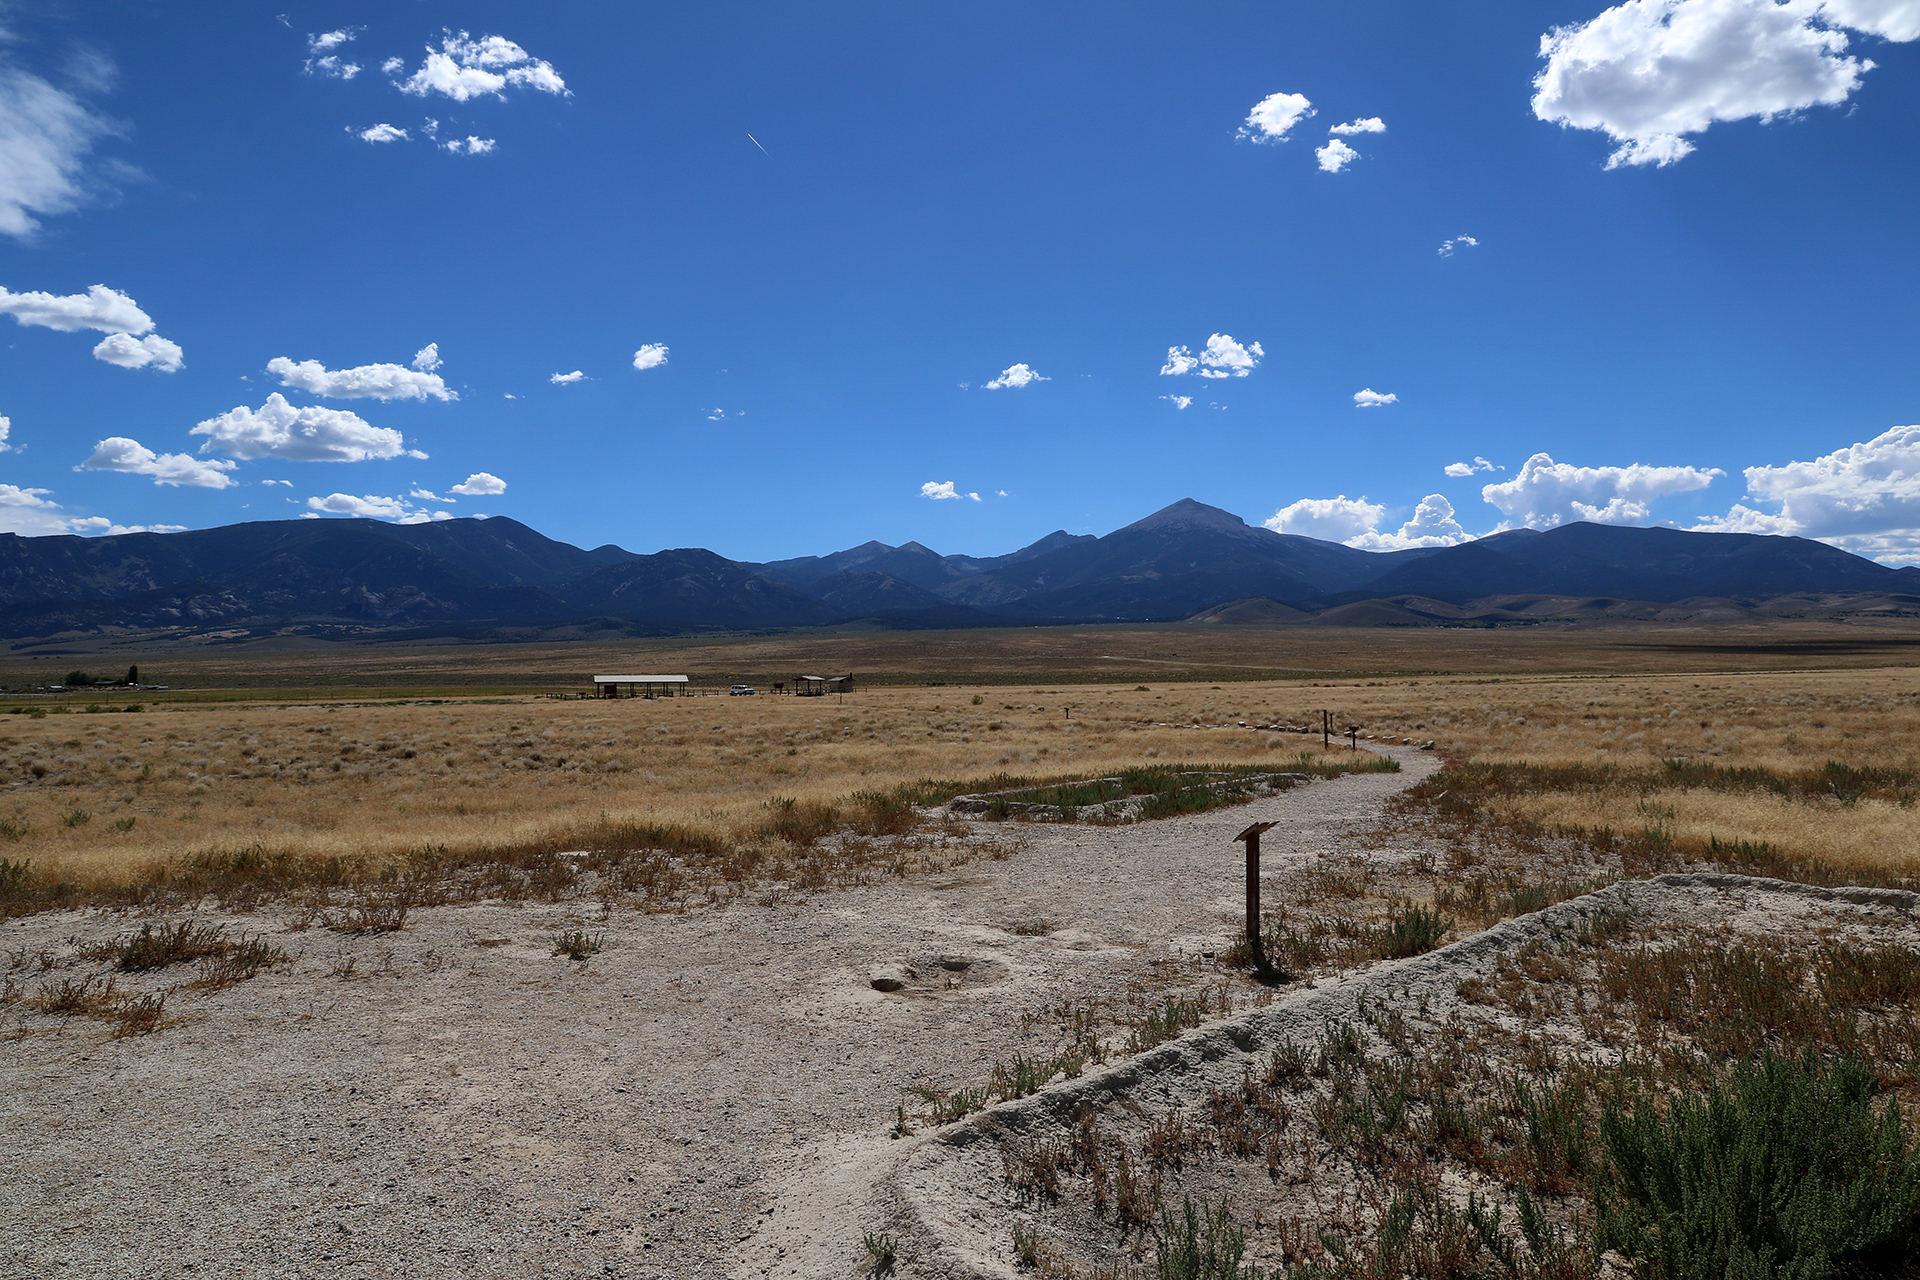 GreatBasin-531